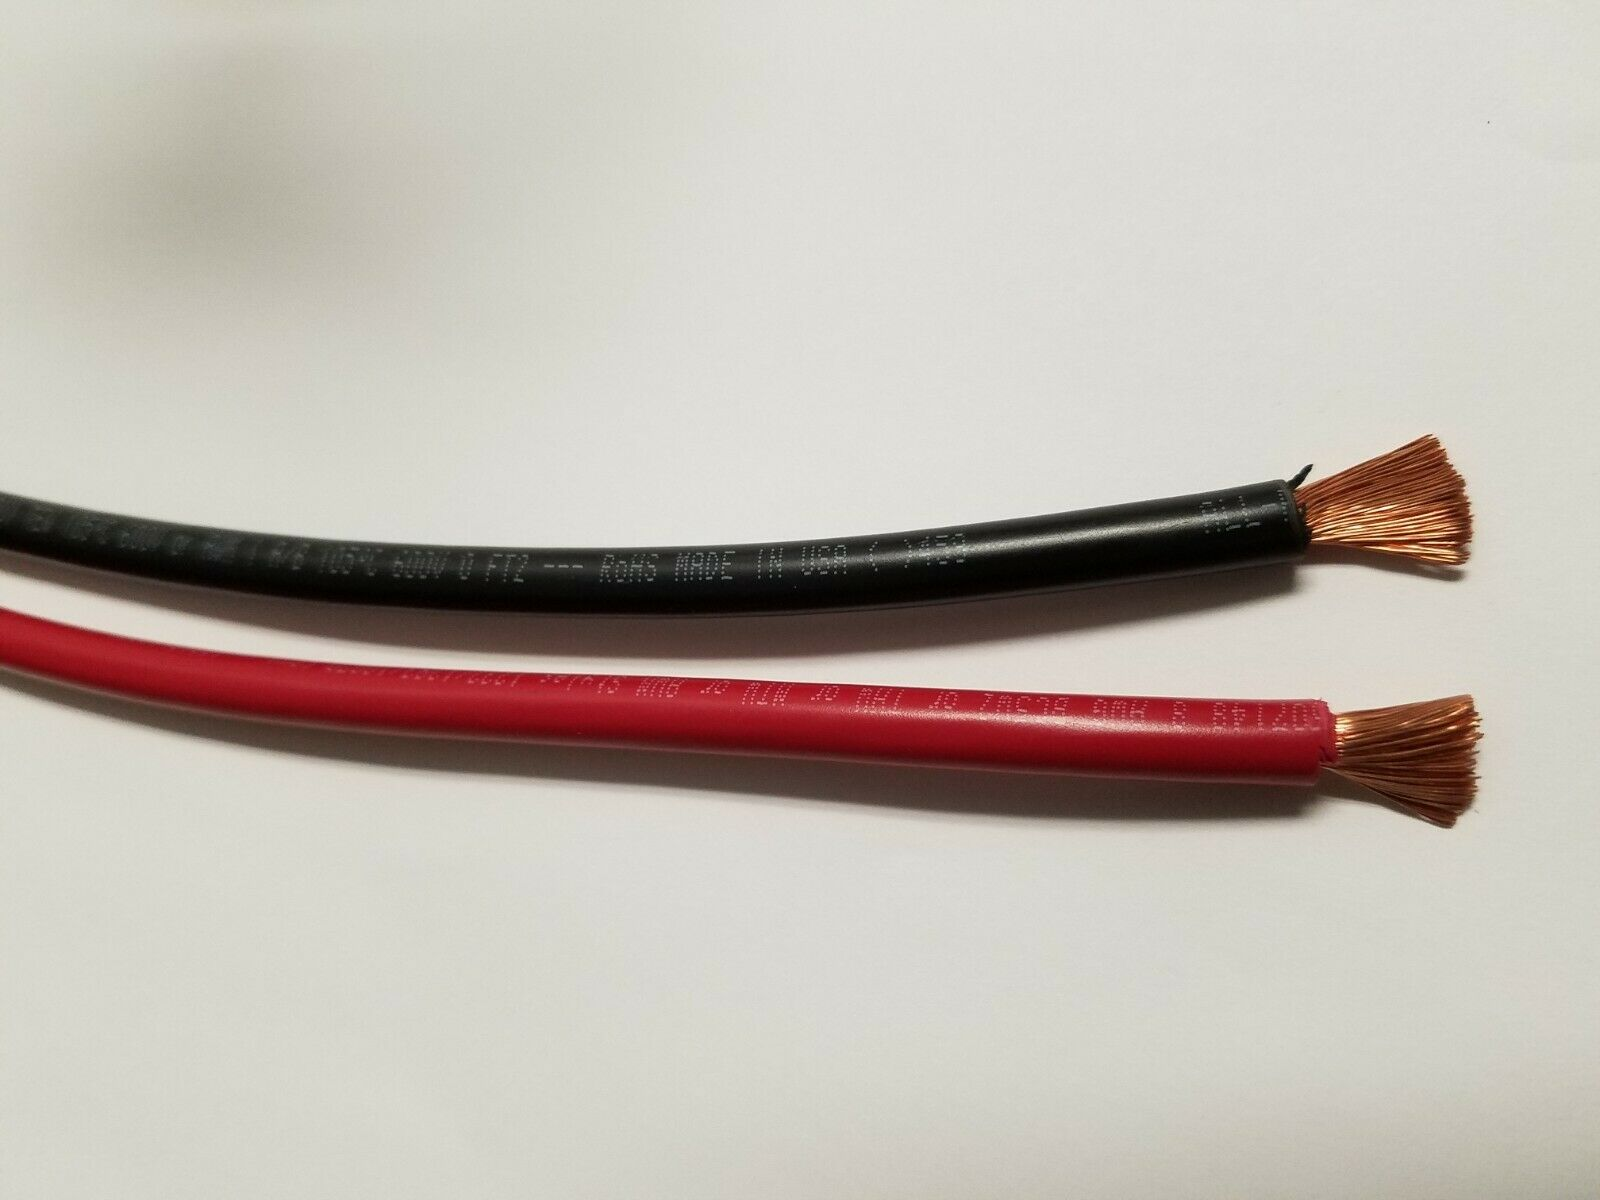 8 Gauge Wire Red Black 25 Ft Each Primary Awg Stranded Copper 20 Feet 4 Power Cable Best Quality Remote 1 Of 1free Shipping